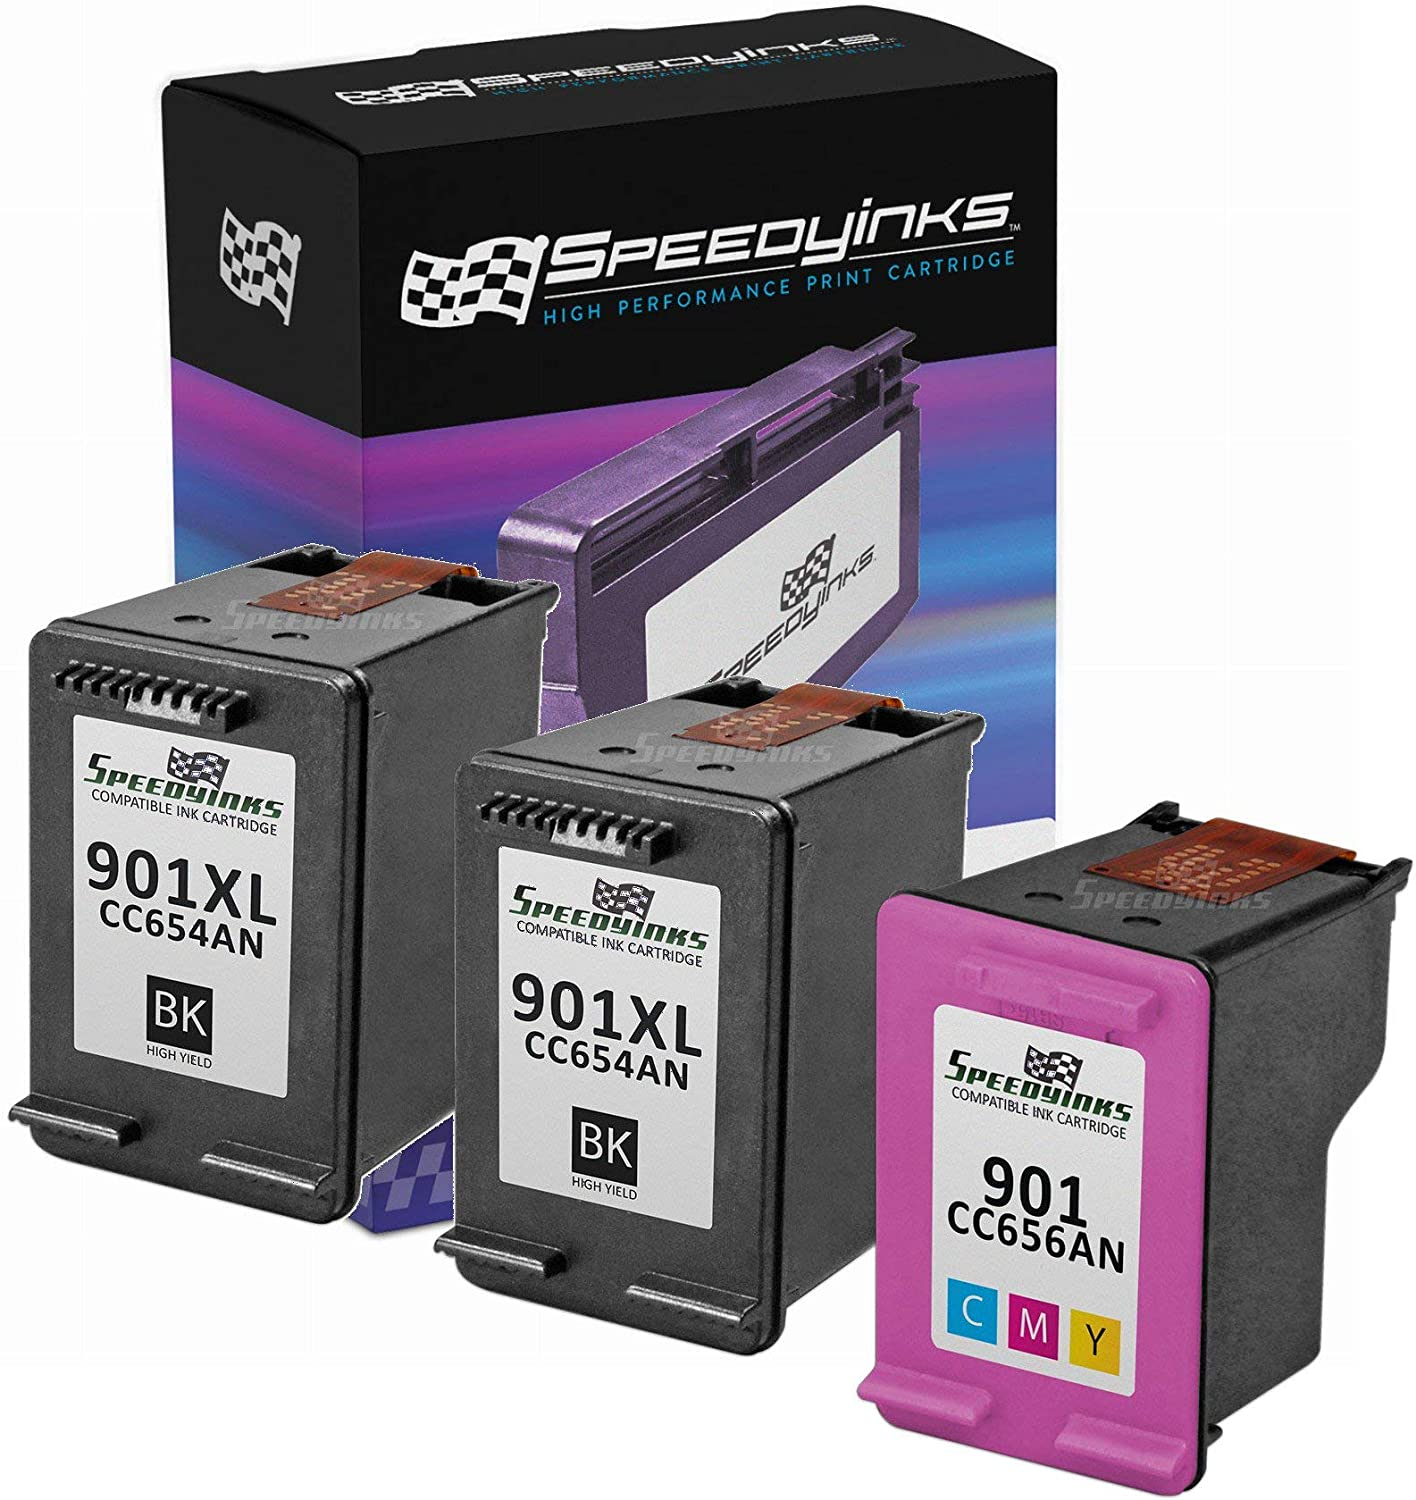 Black, 2-Pack LD Remanufactured Ink Cartridge Replacement for HP 901XL CC654AN High Yield